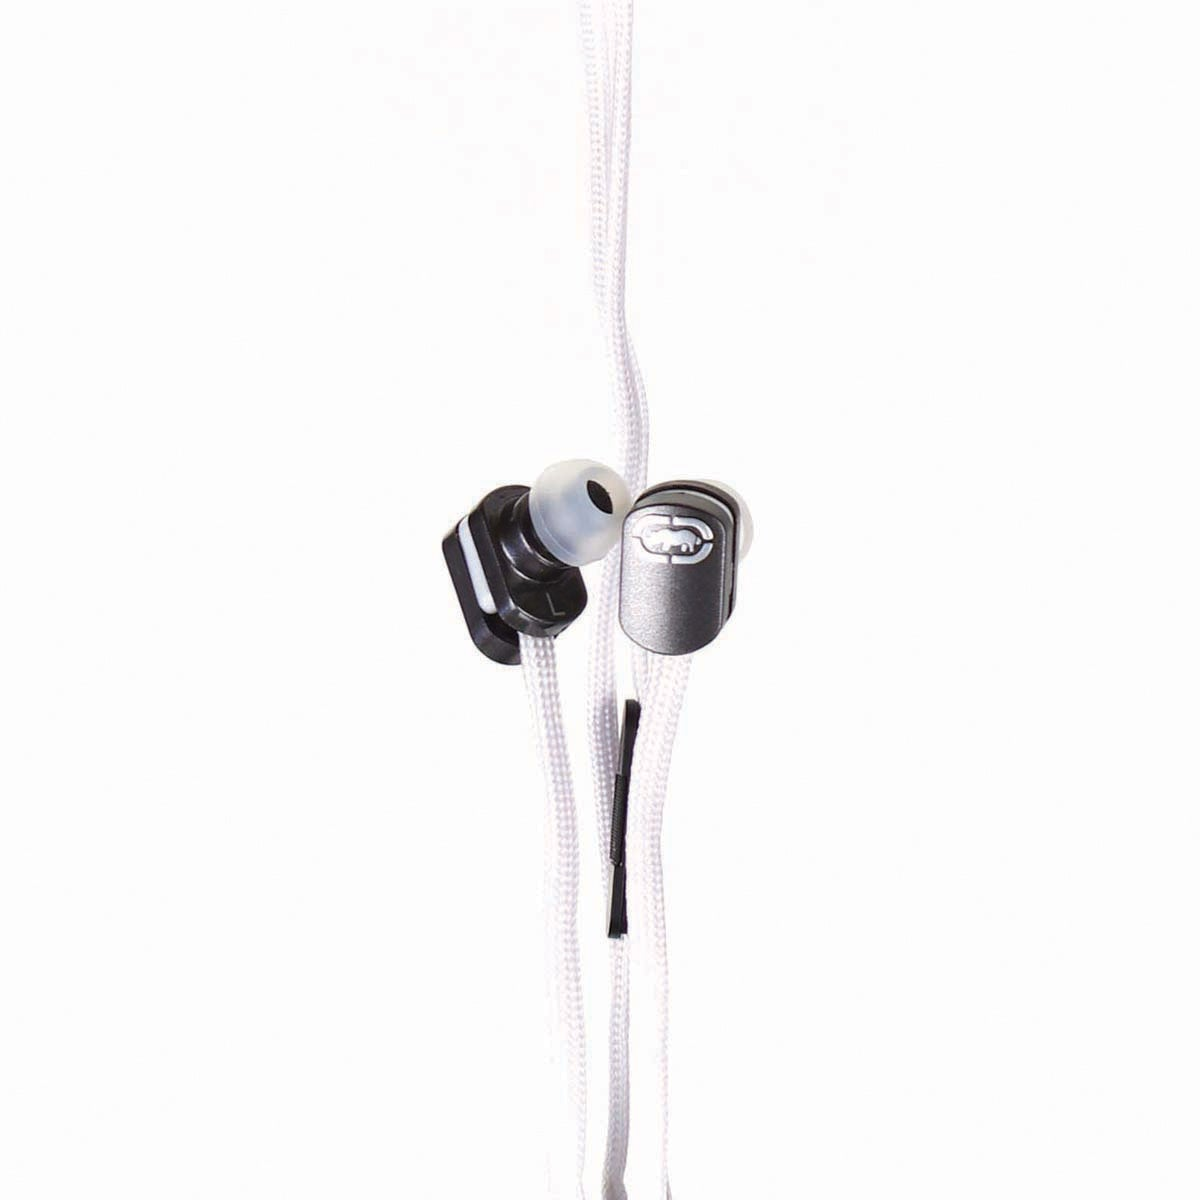 Marc Ecko Black Silicone Earbud on White Nylon Shoelace Cable